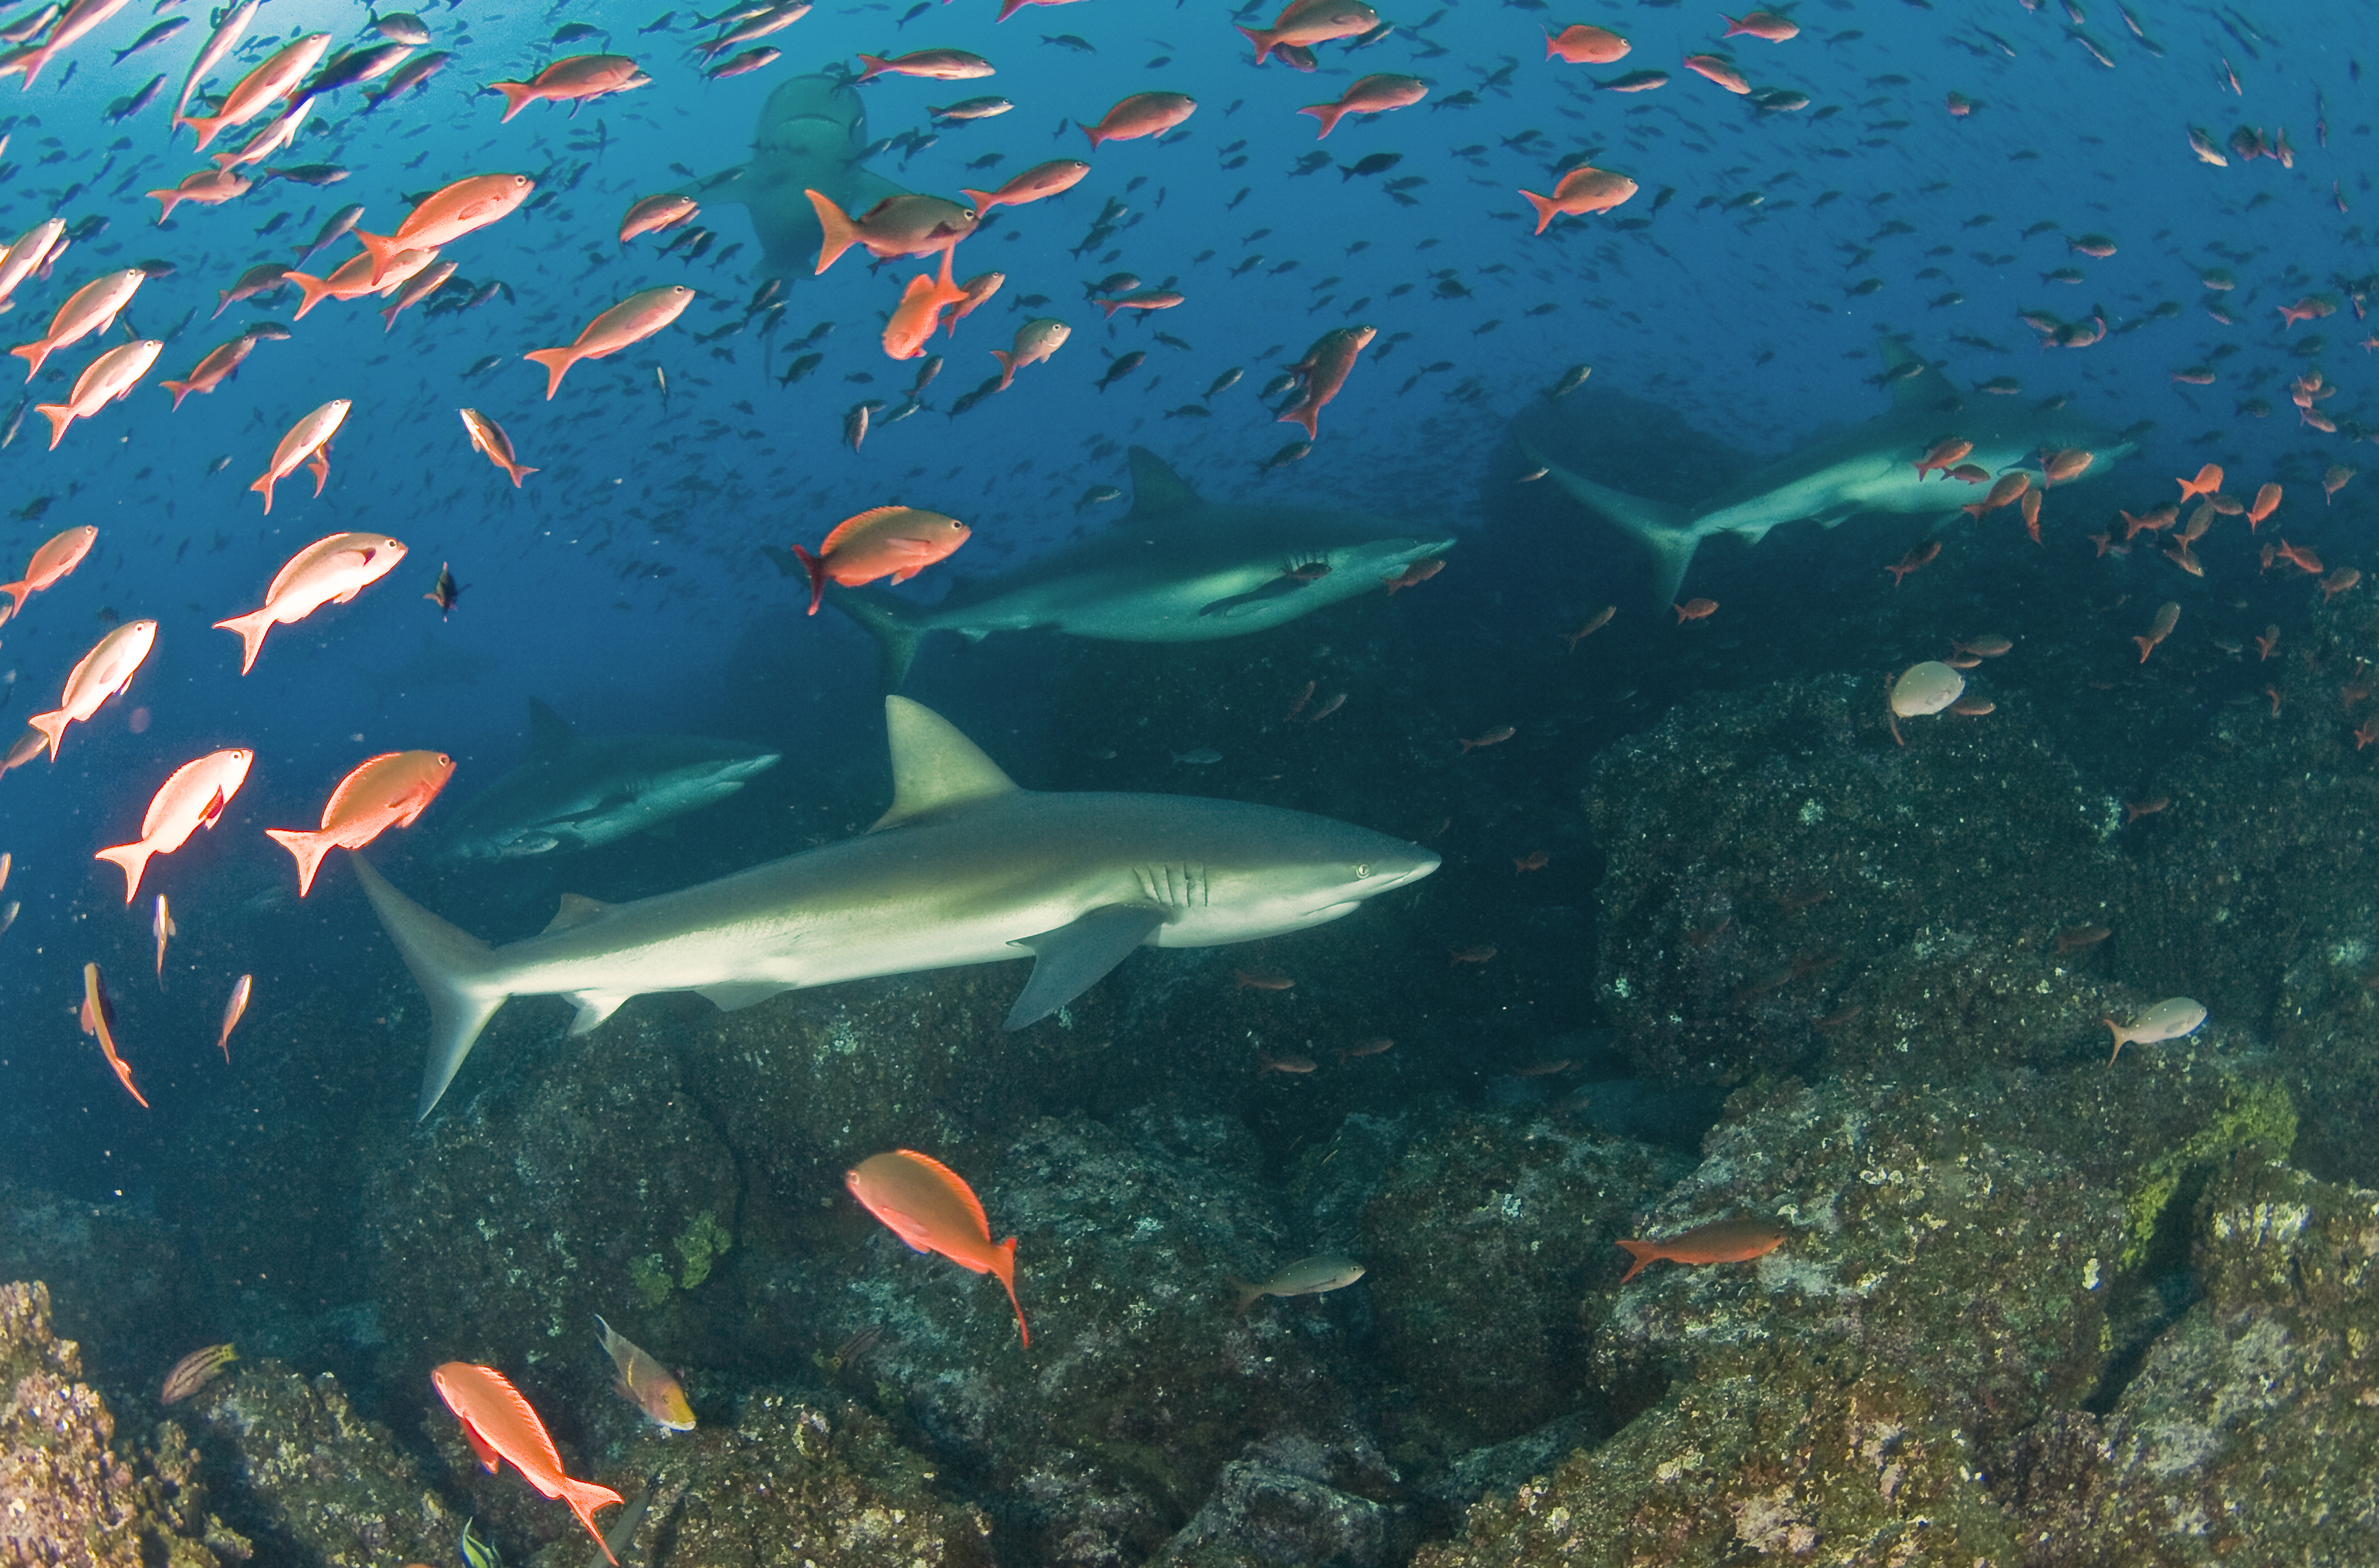 Pregnant Galapagos sharks aggregate in the archipelago they were named after. Photo by Pelayo Salinas| © Charles Darwin Foundation